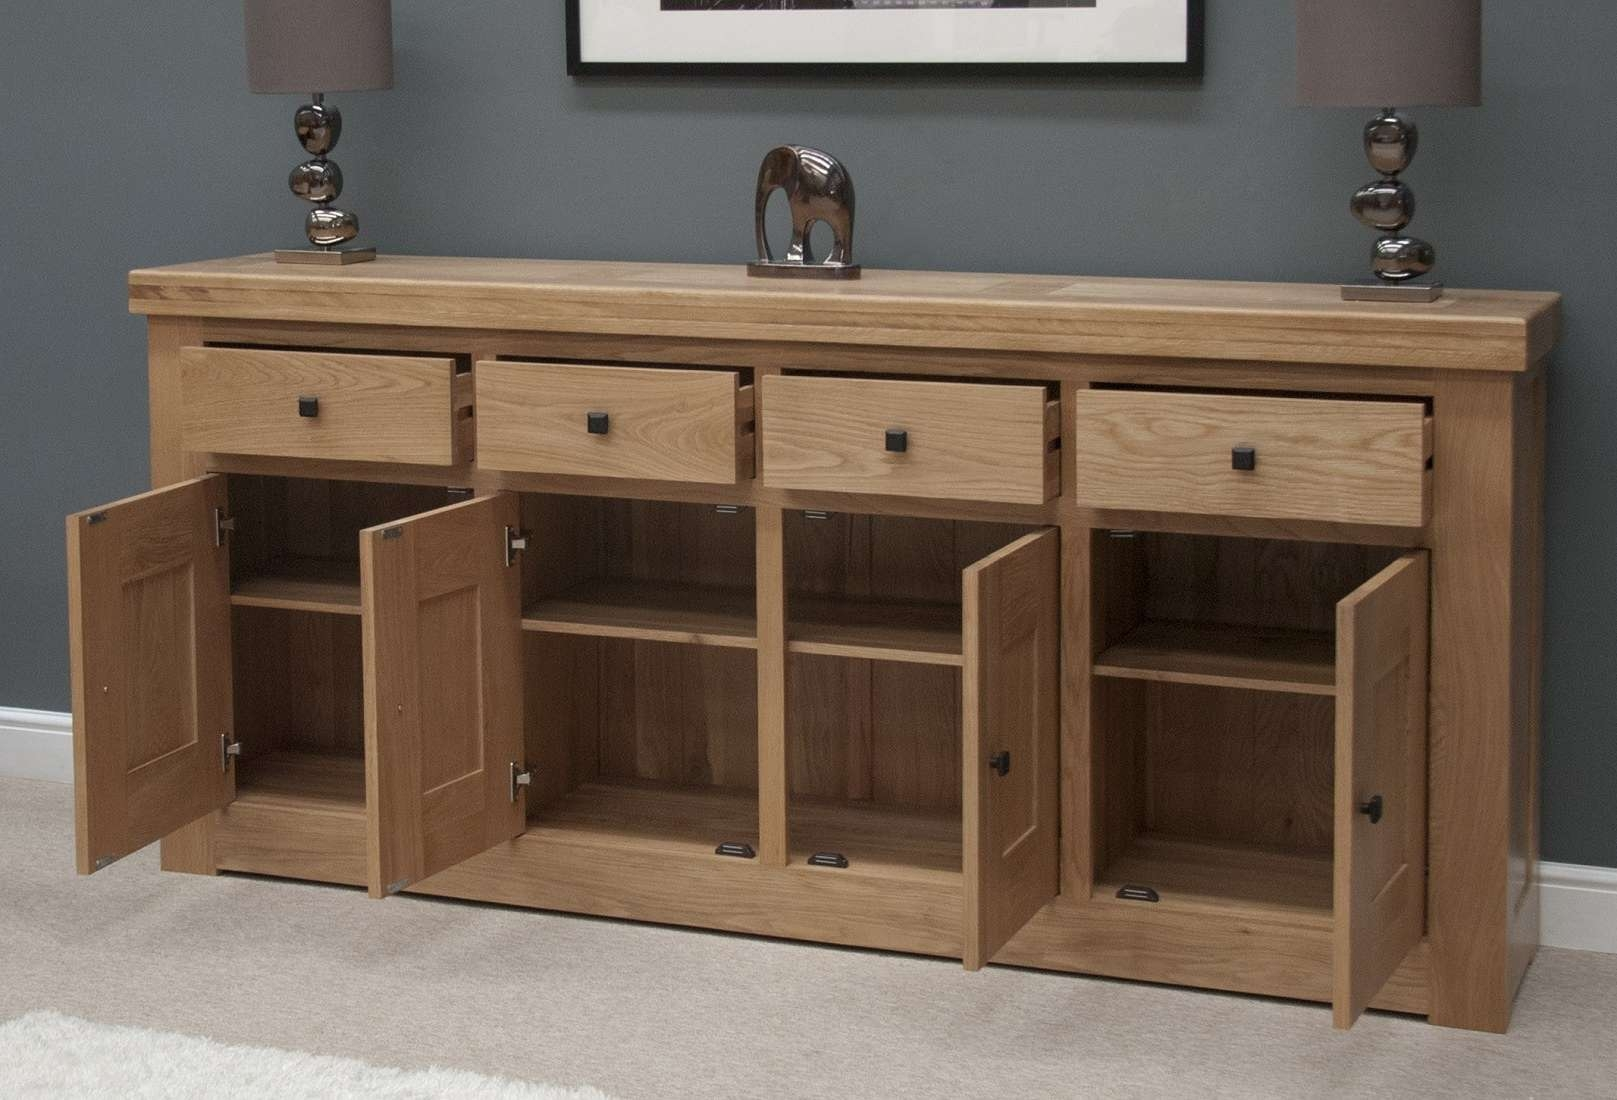 Astounding Extra Long Sideboard With Regard To Long Sideboards (View 5 of 20)